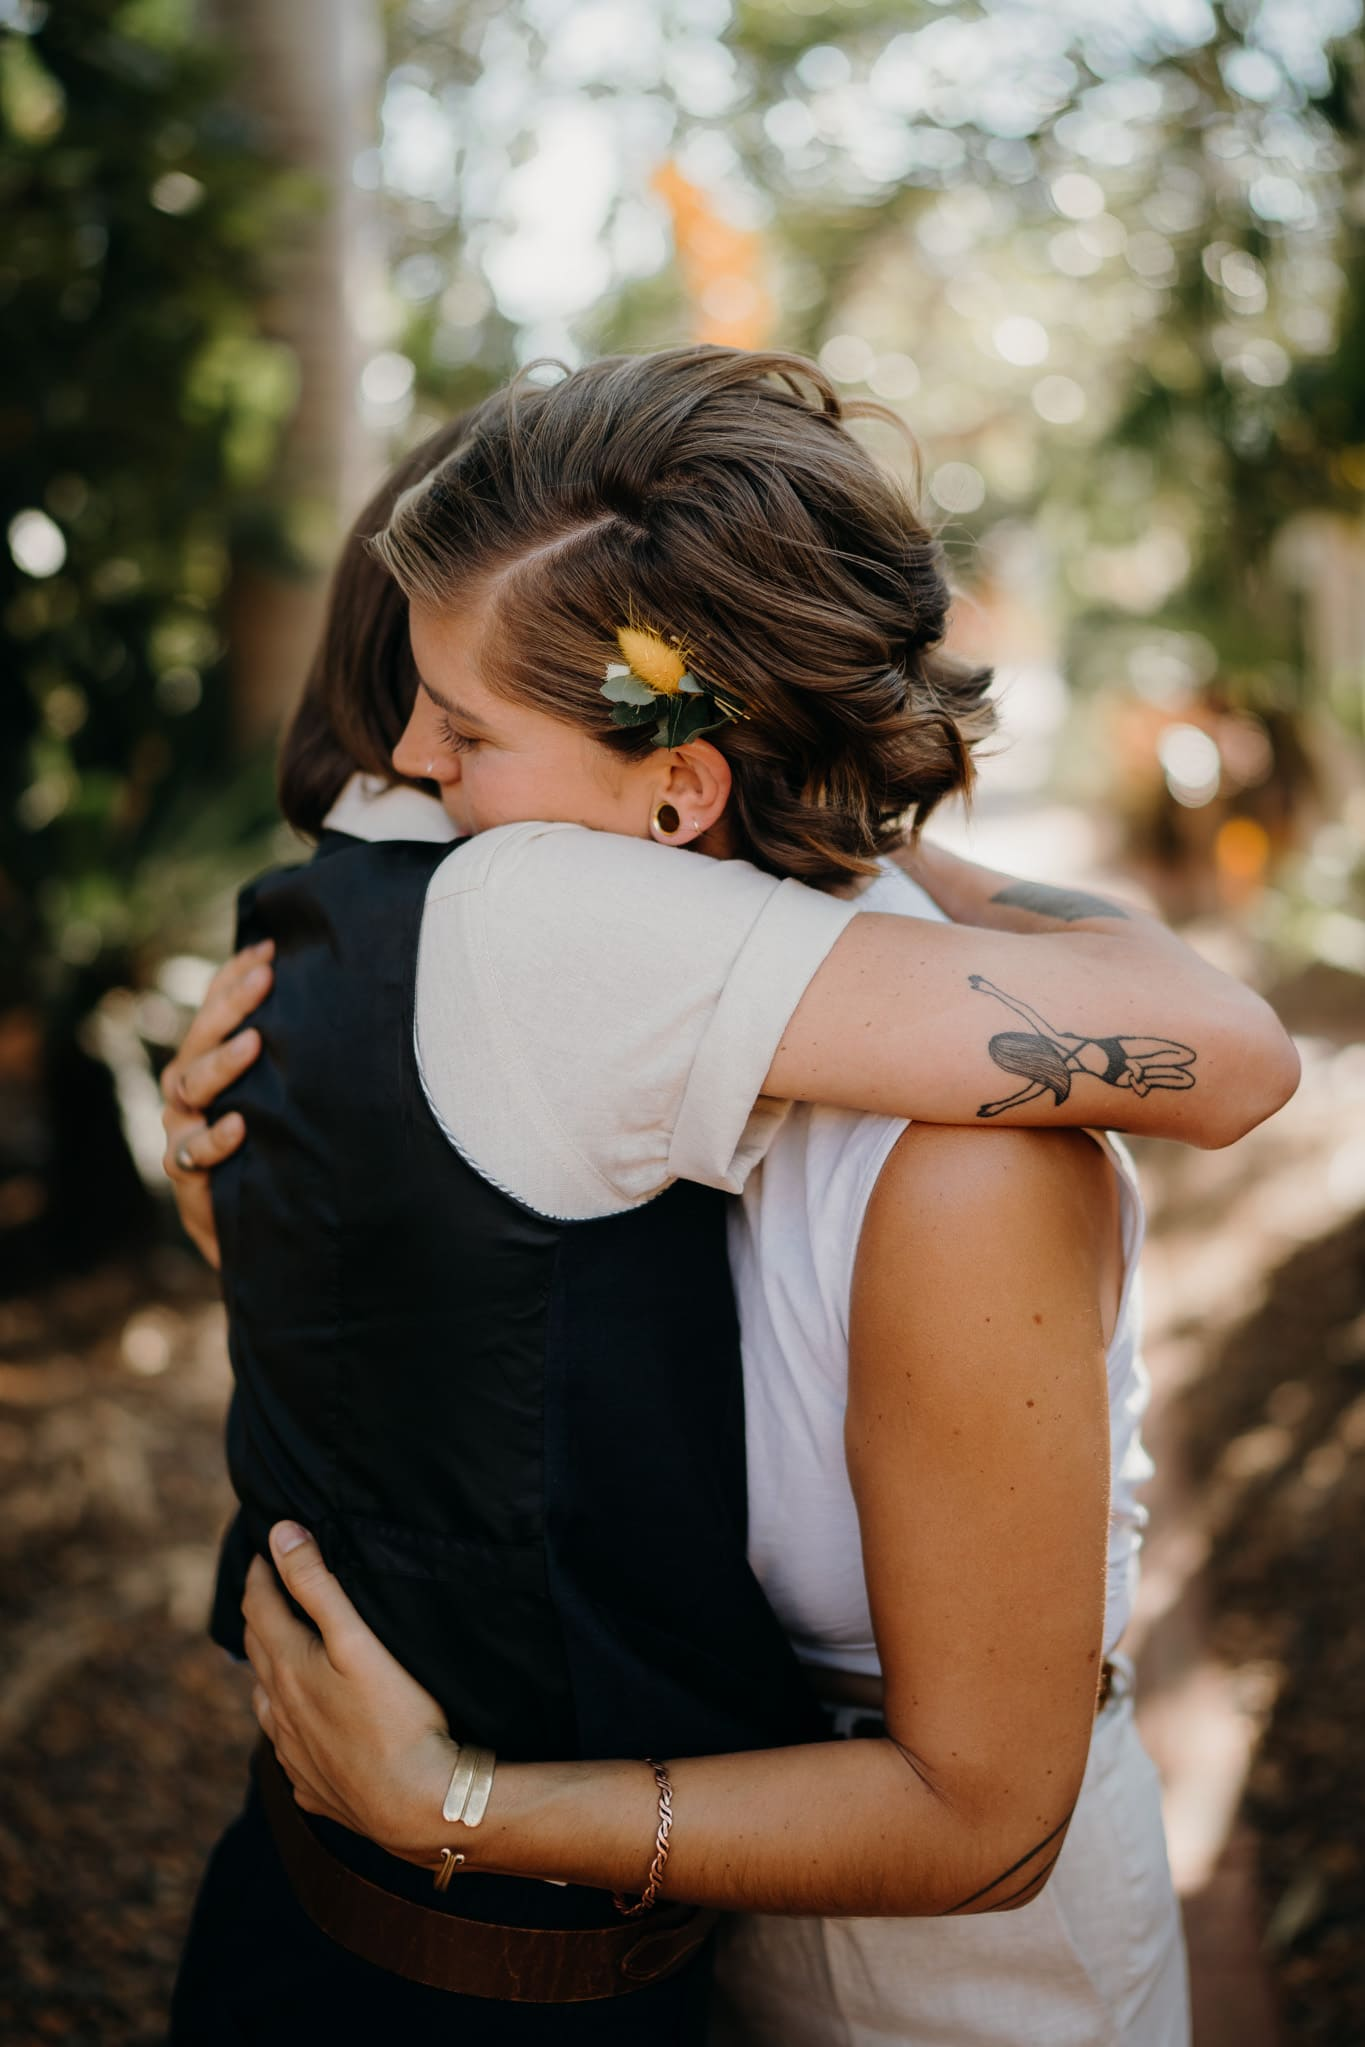 two women hugging each other lovingly at Broome elopement wedding